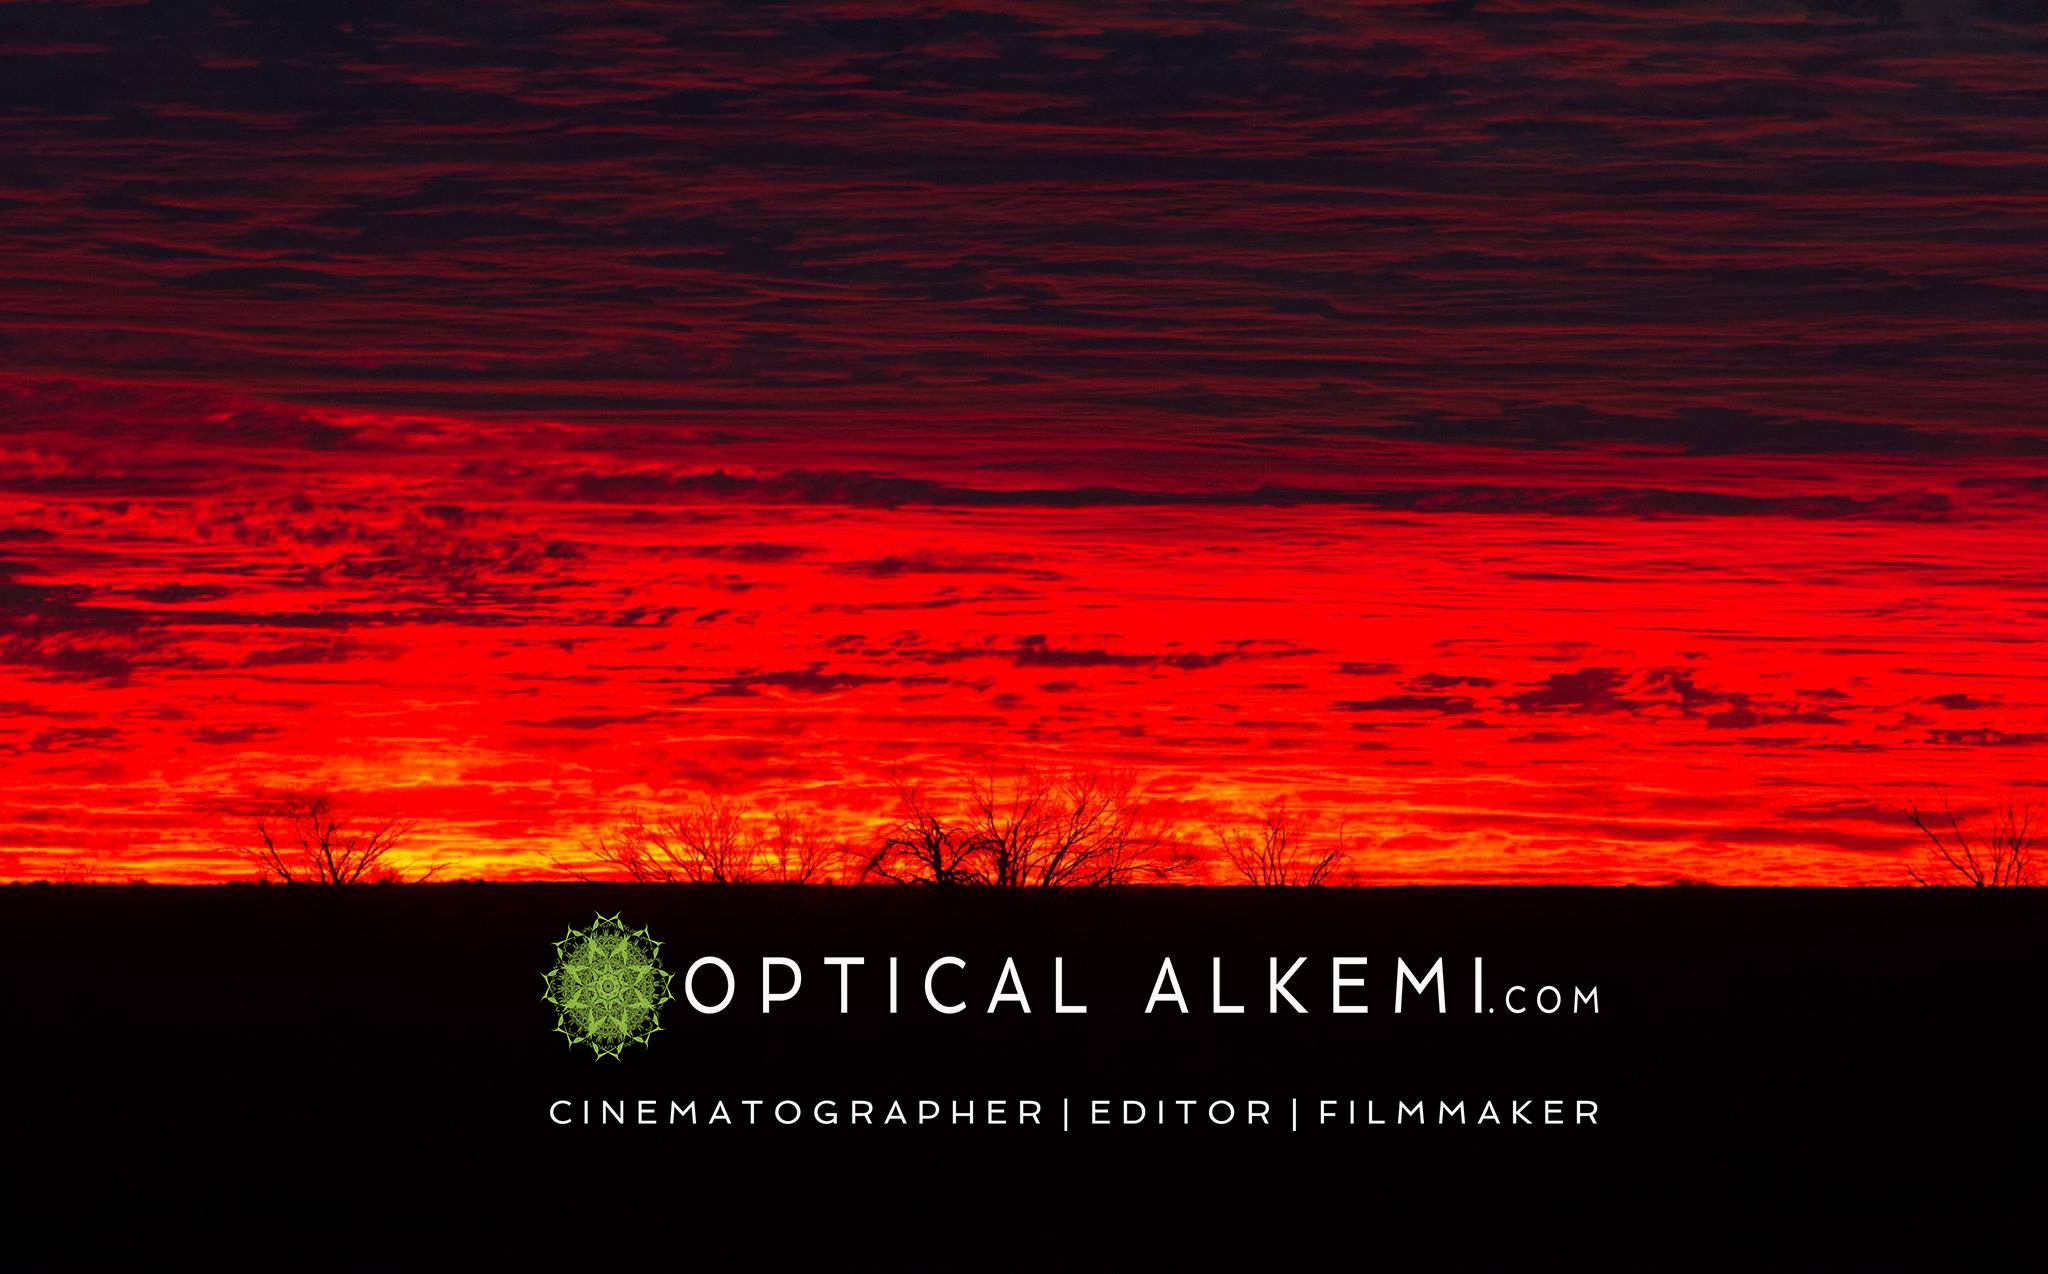 opticalalkemi